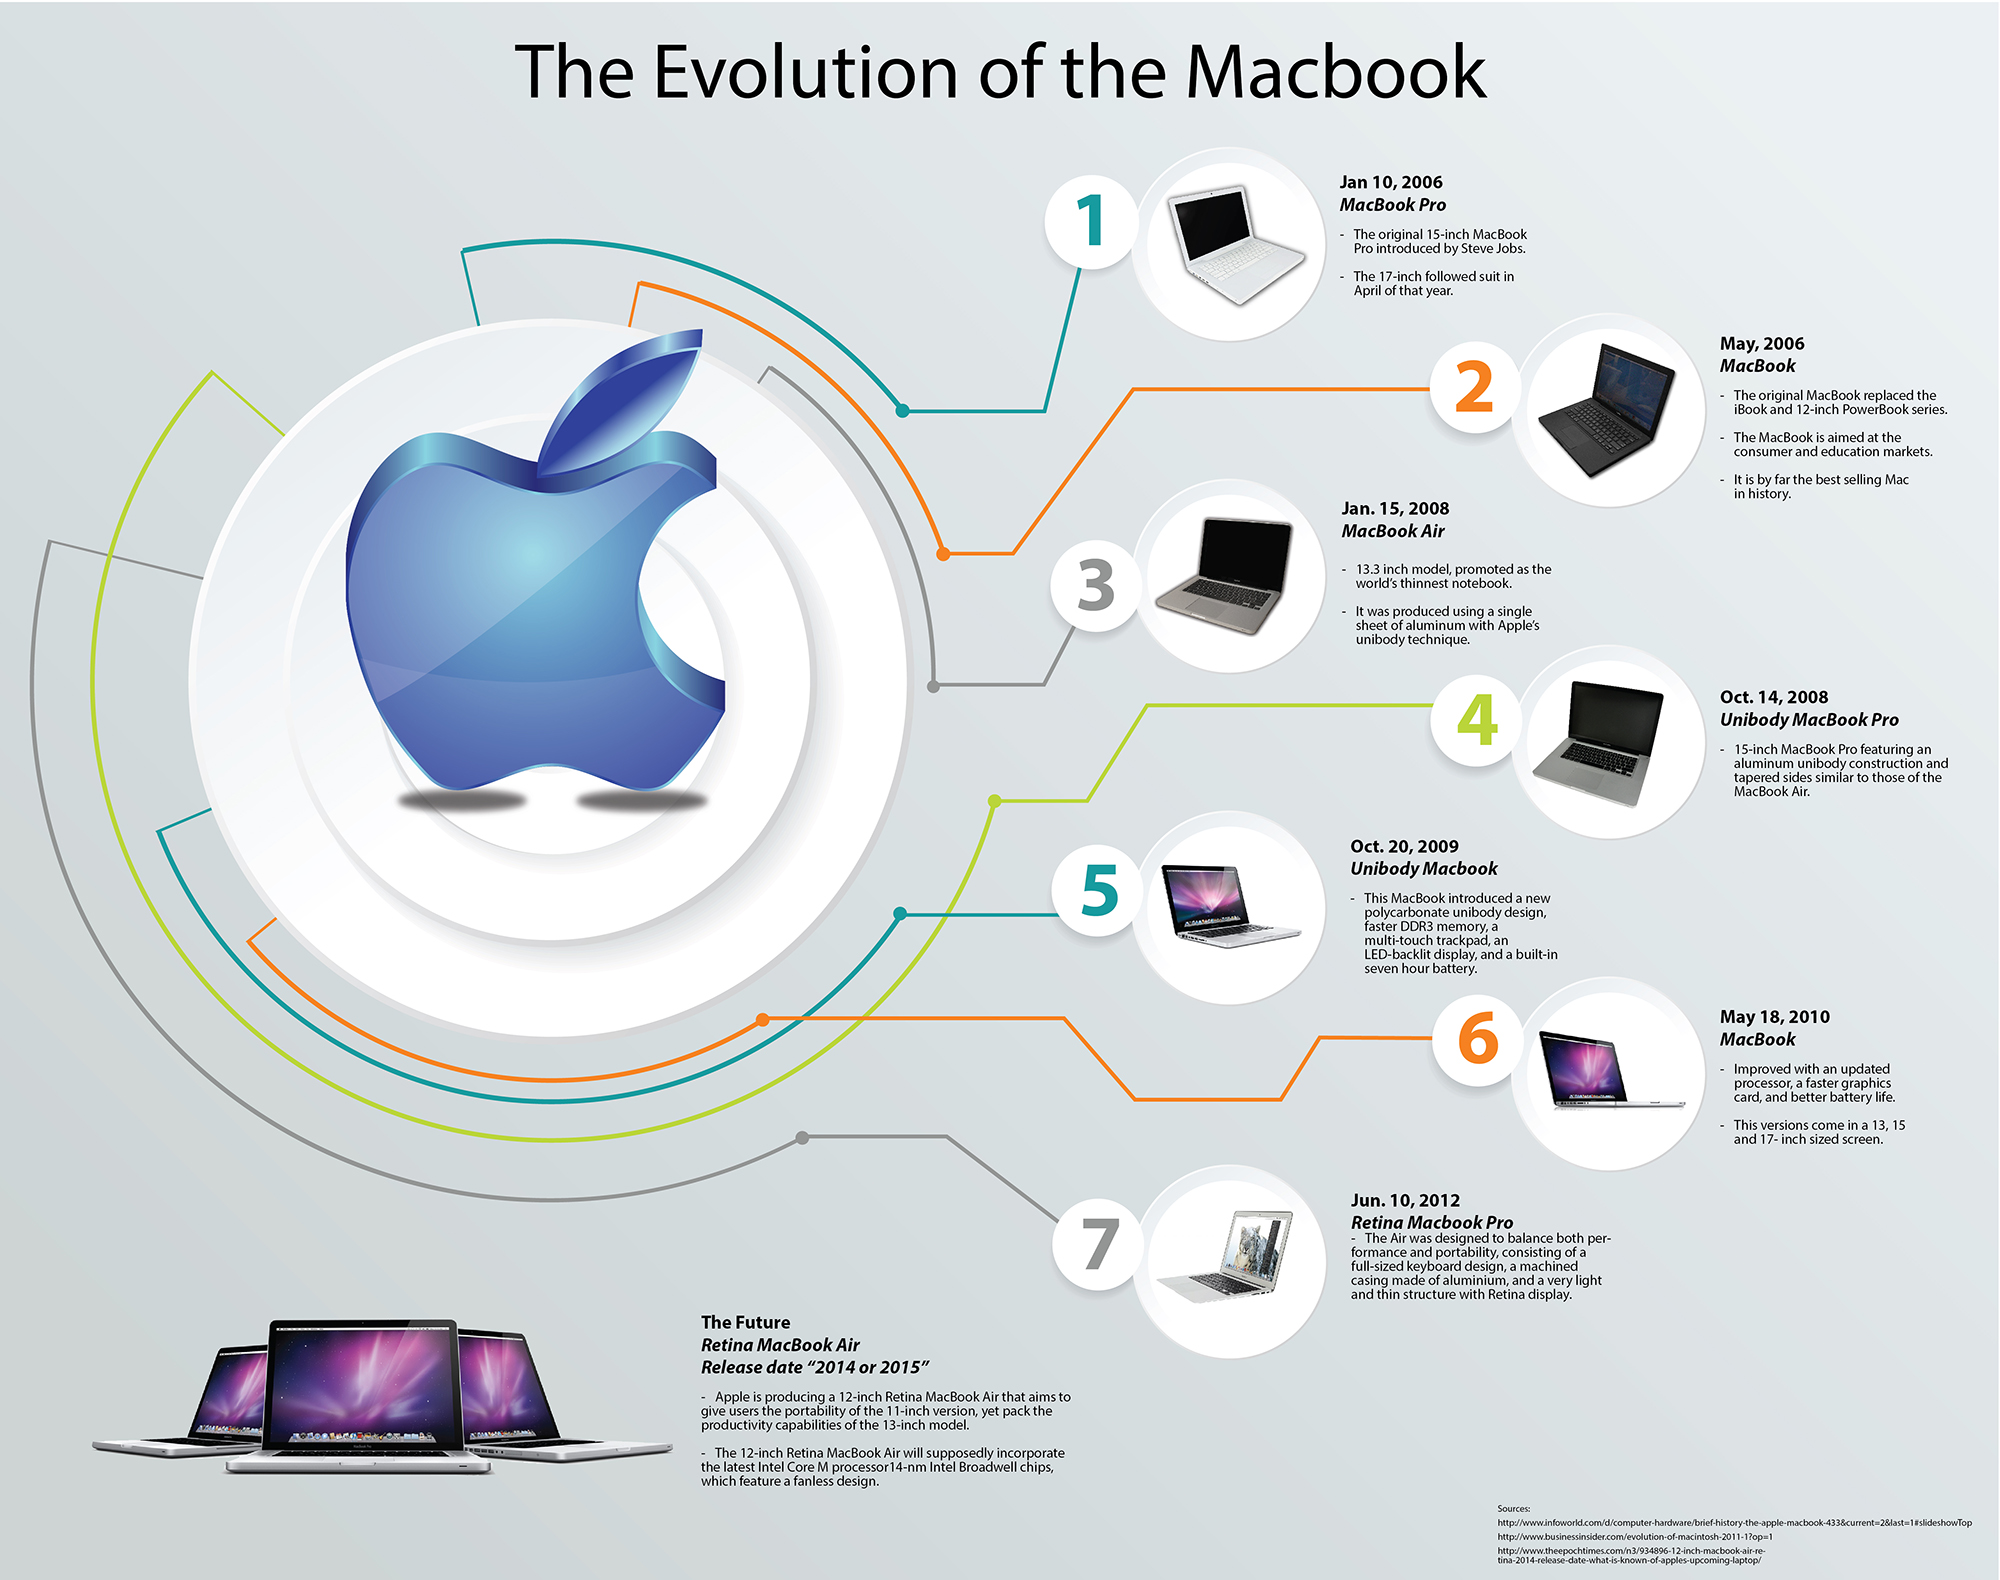 The Evolution of the Macbook Series